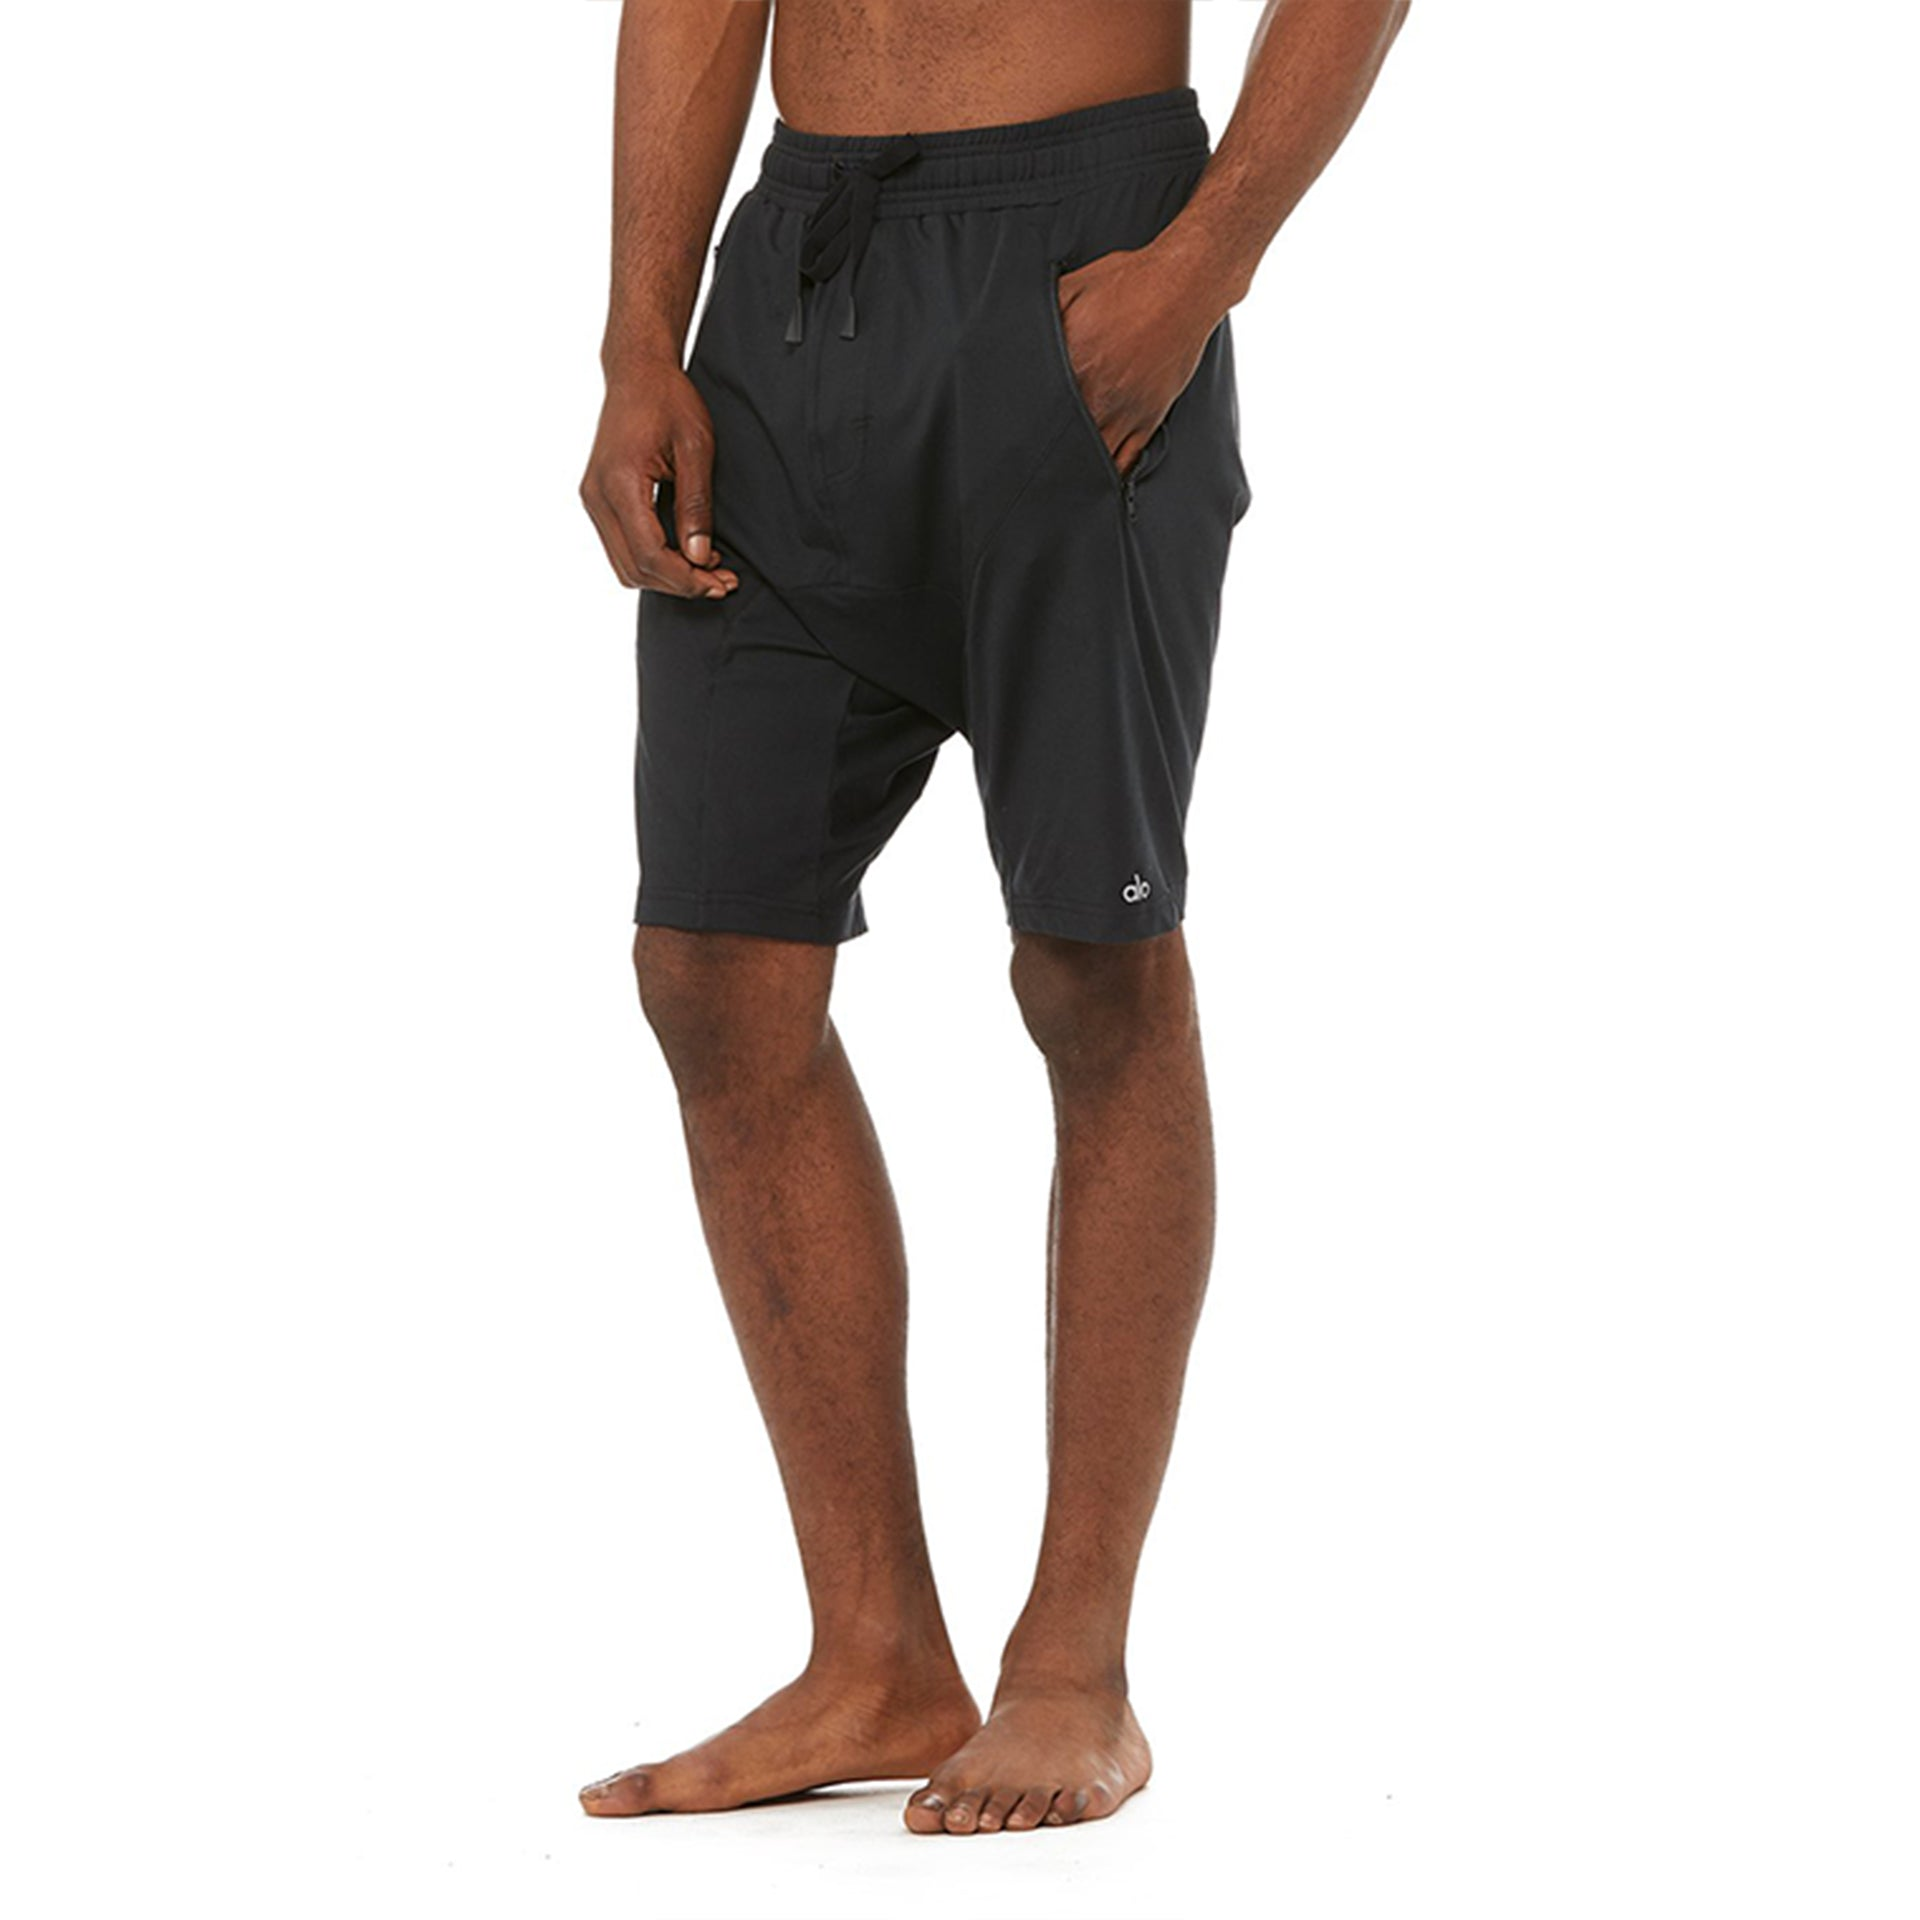 Alo Yoga Mens Crotch Short in Black